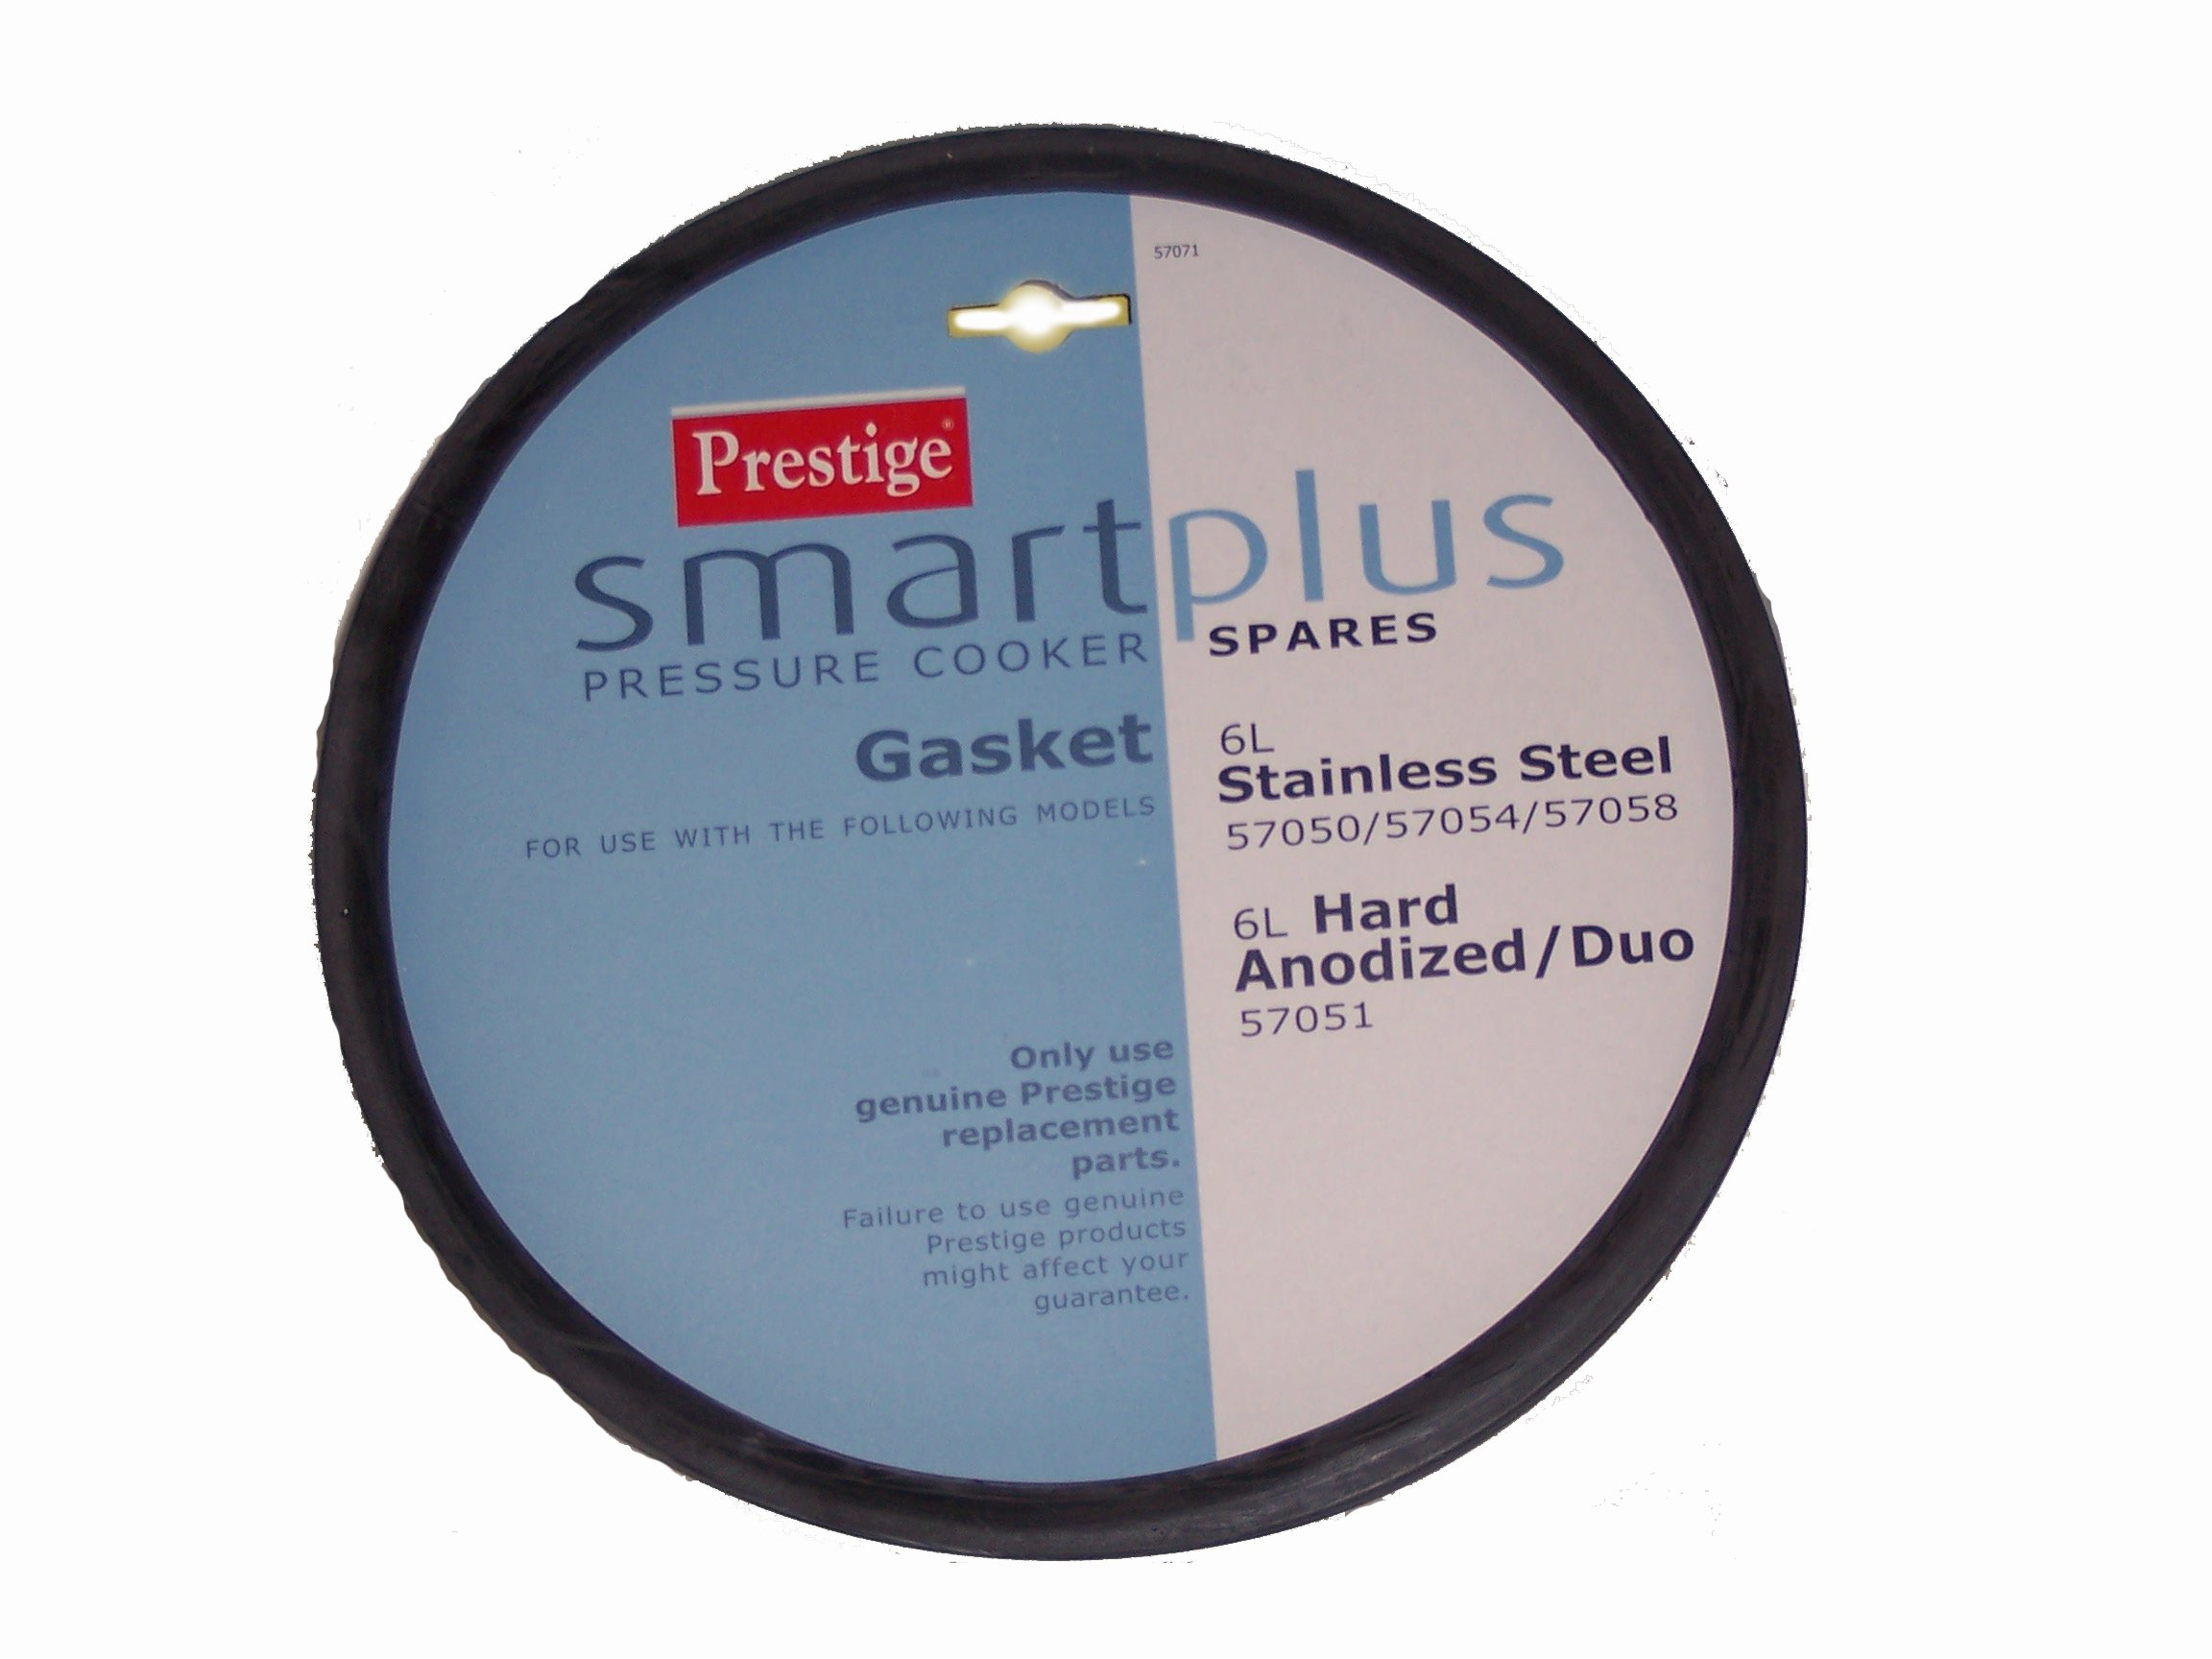 Prestige Smartplus Gasket For 6 Litre Smartplus Pressure Cookers 57050 And 57051